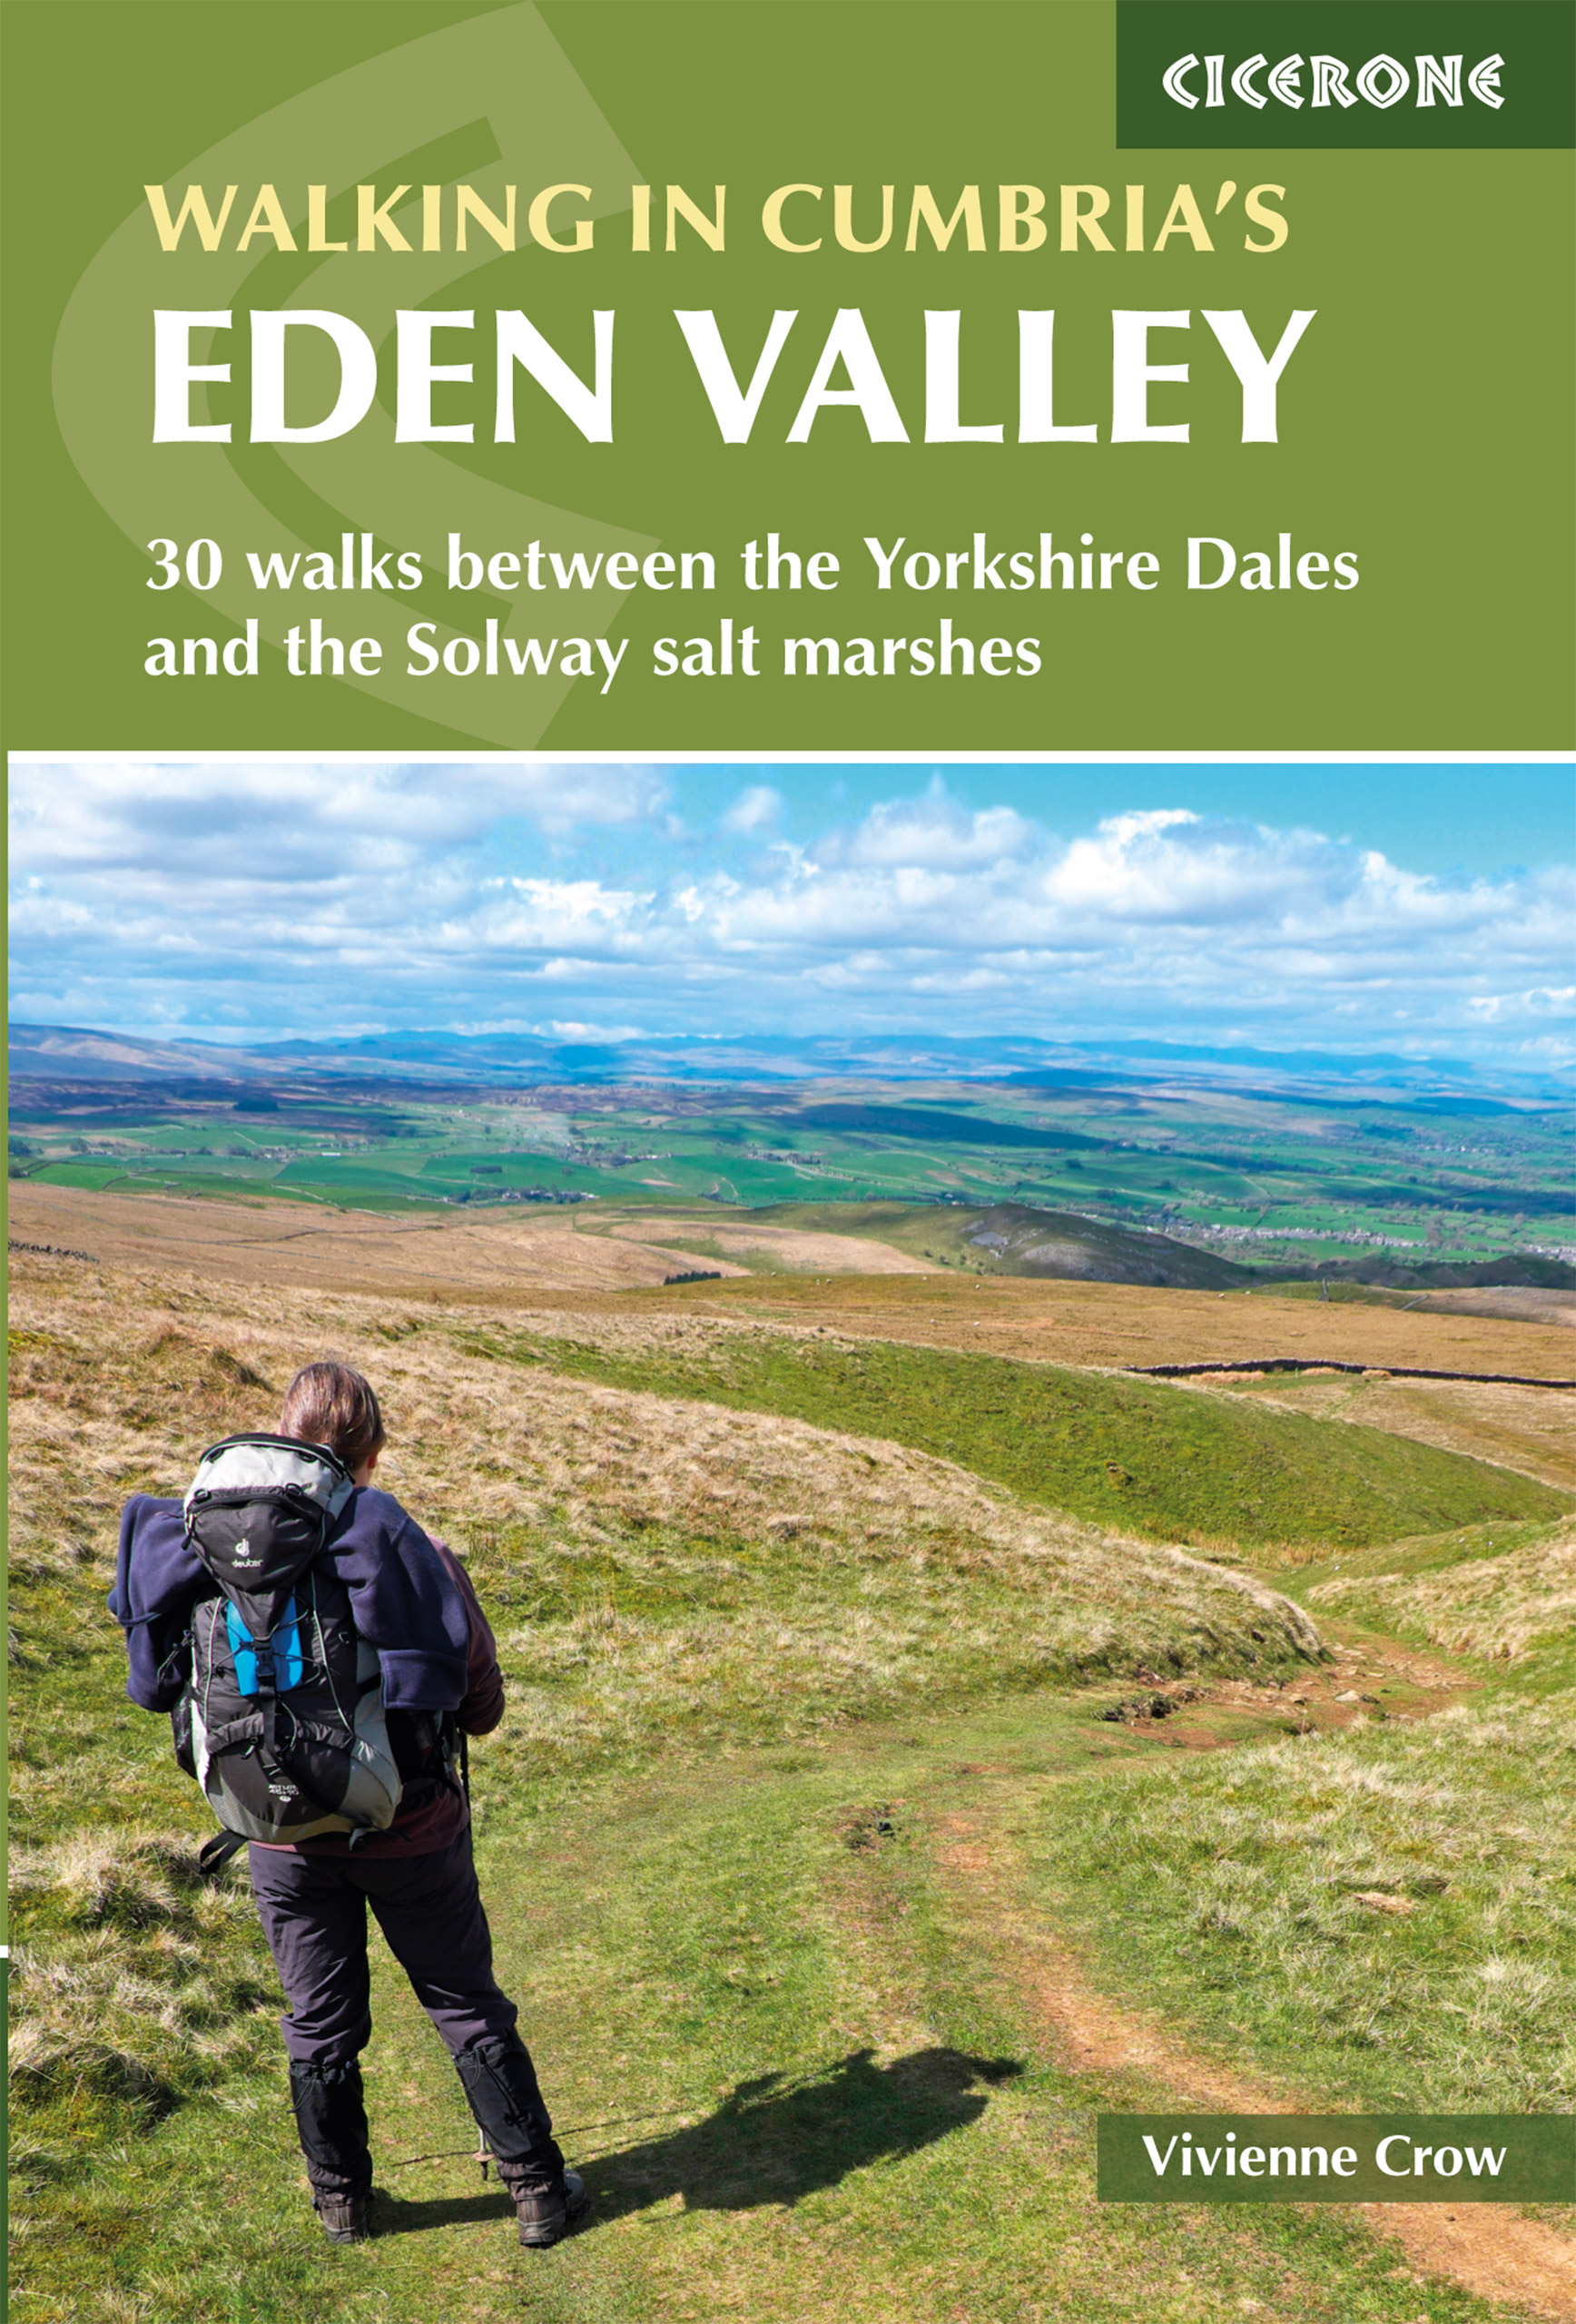 Walking in Cumbria's Eden Valley by Viv Crow